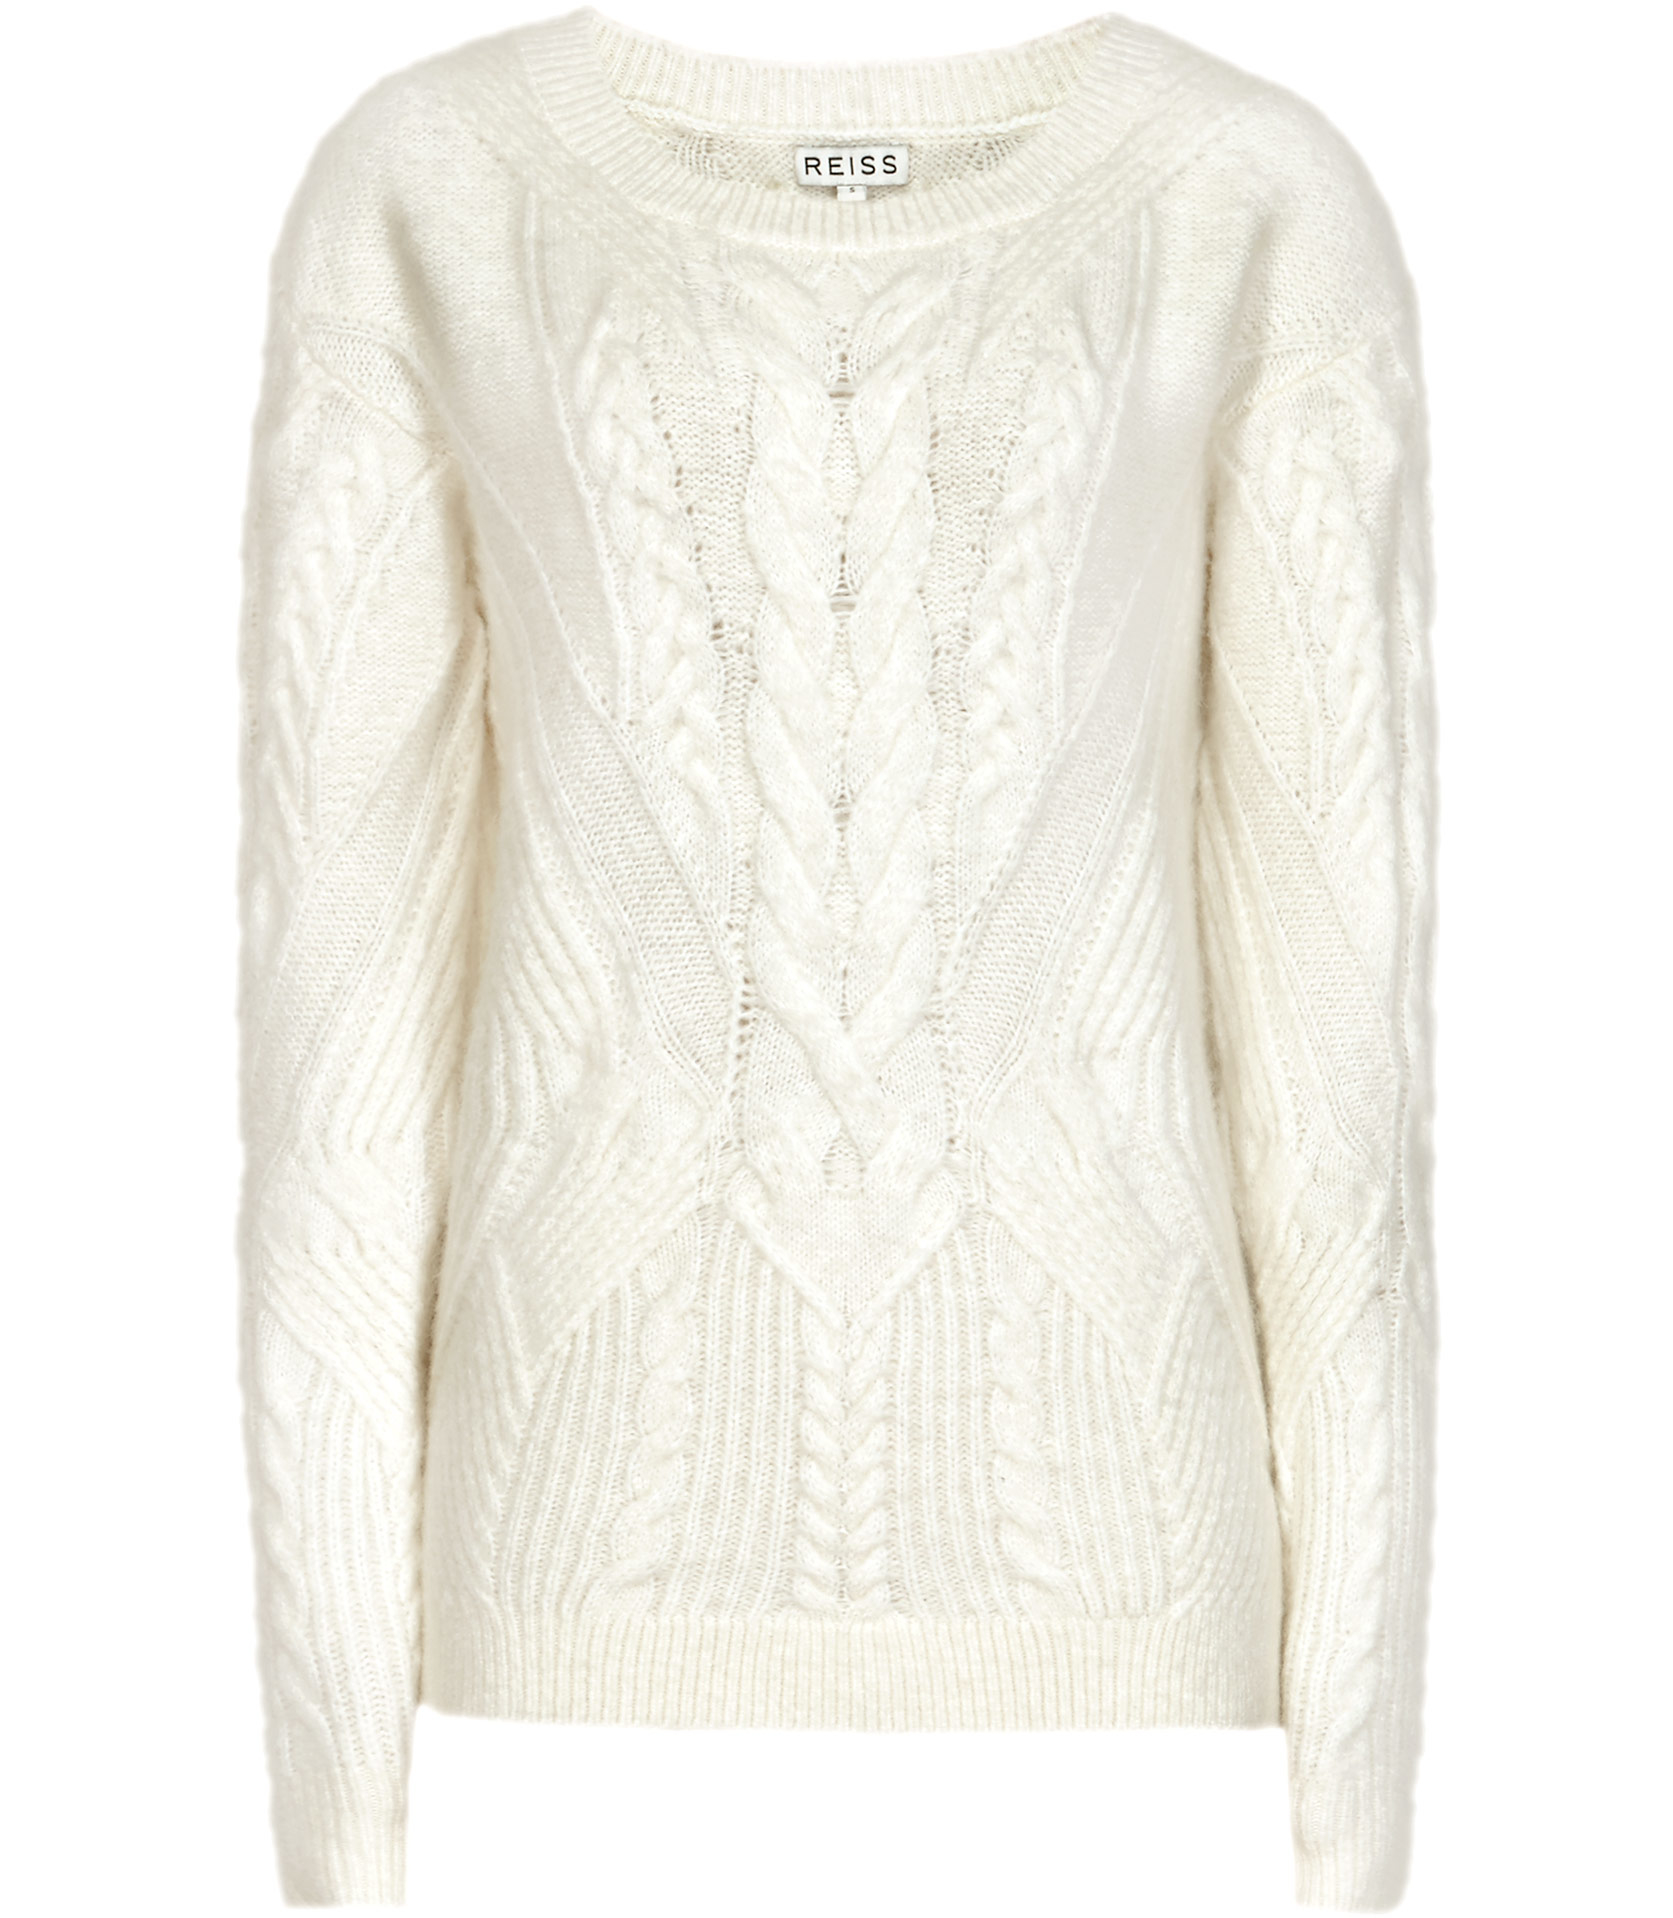 Reiss Maia Cable-knit Jumper in White | Lyst